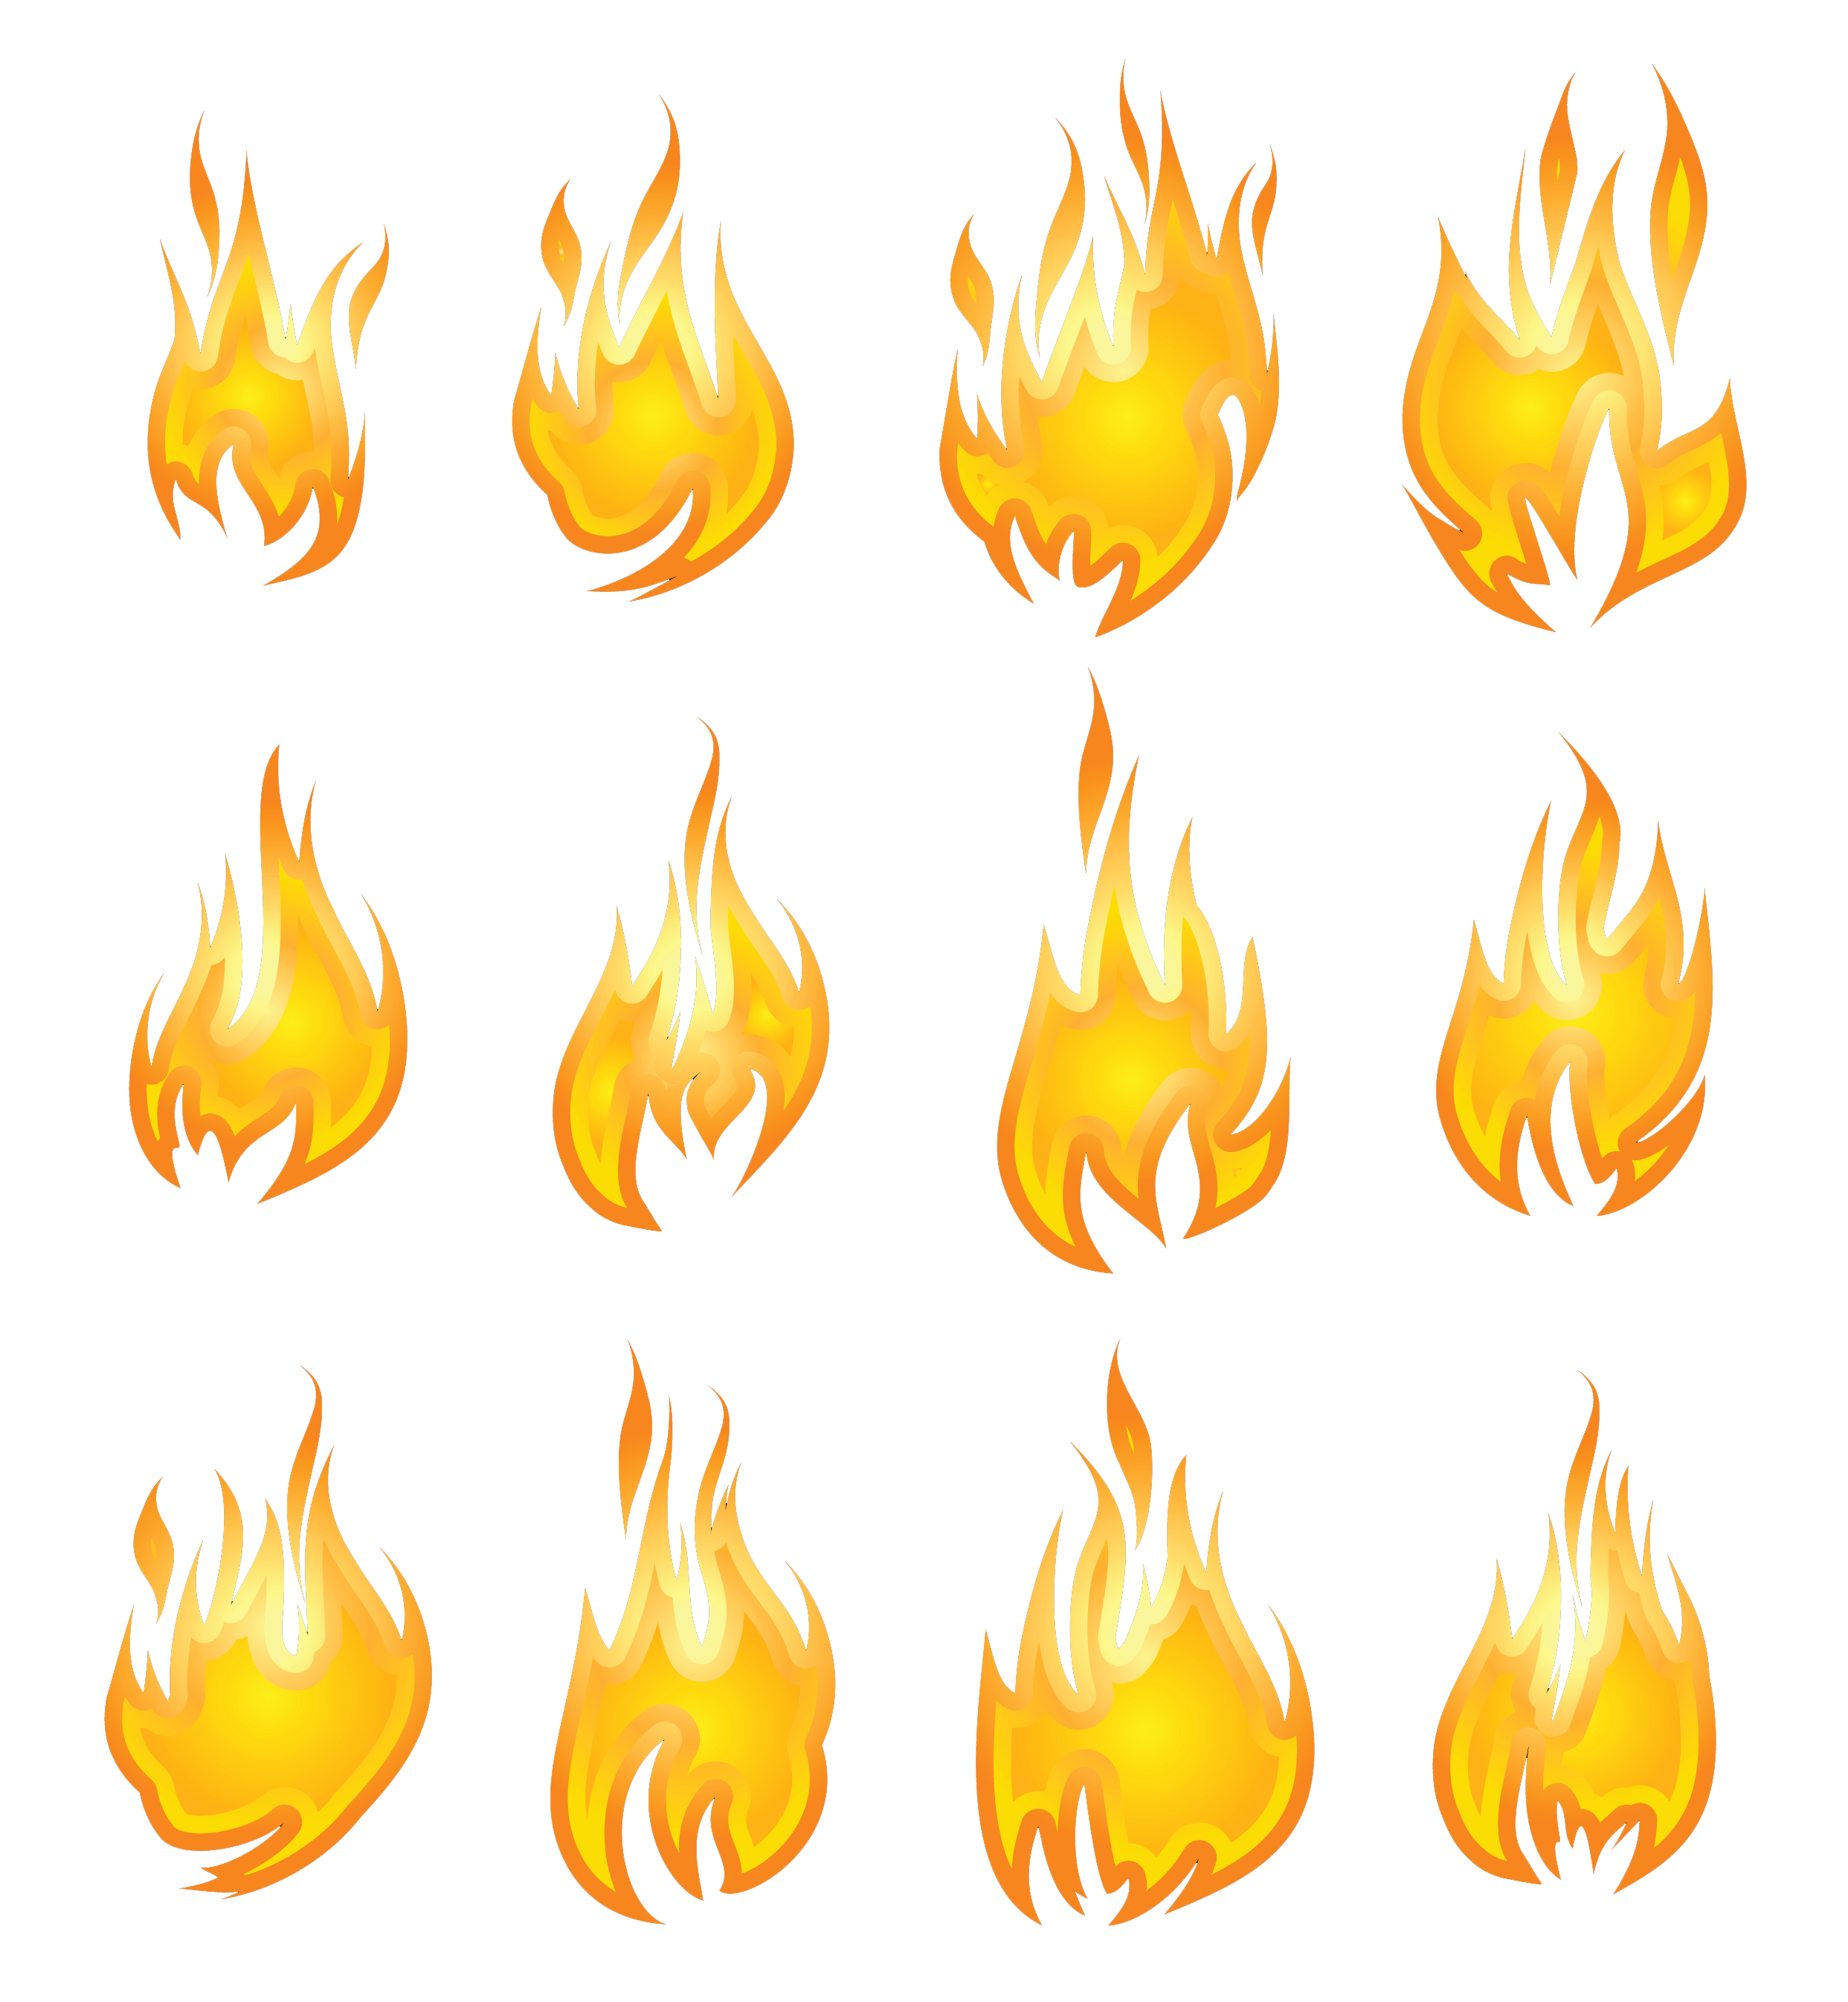 Fire Png Image Png Images Fire Image